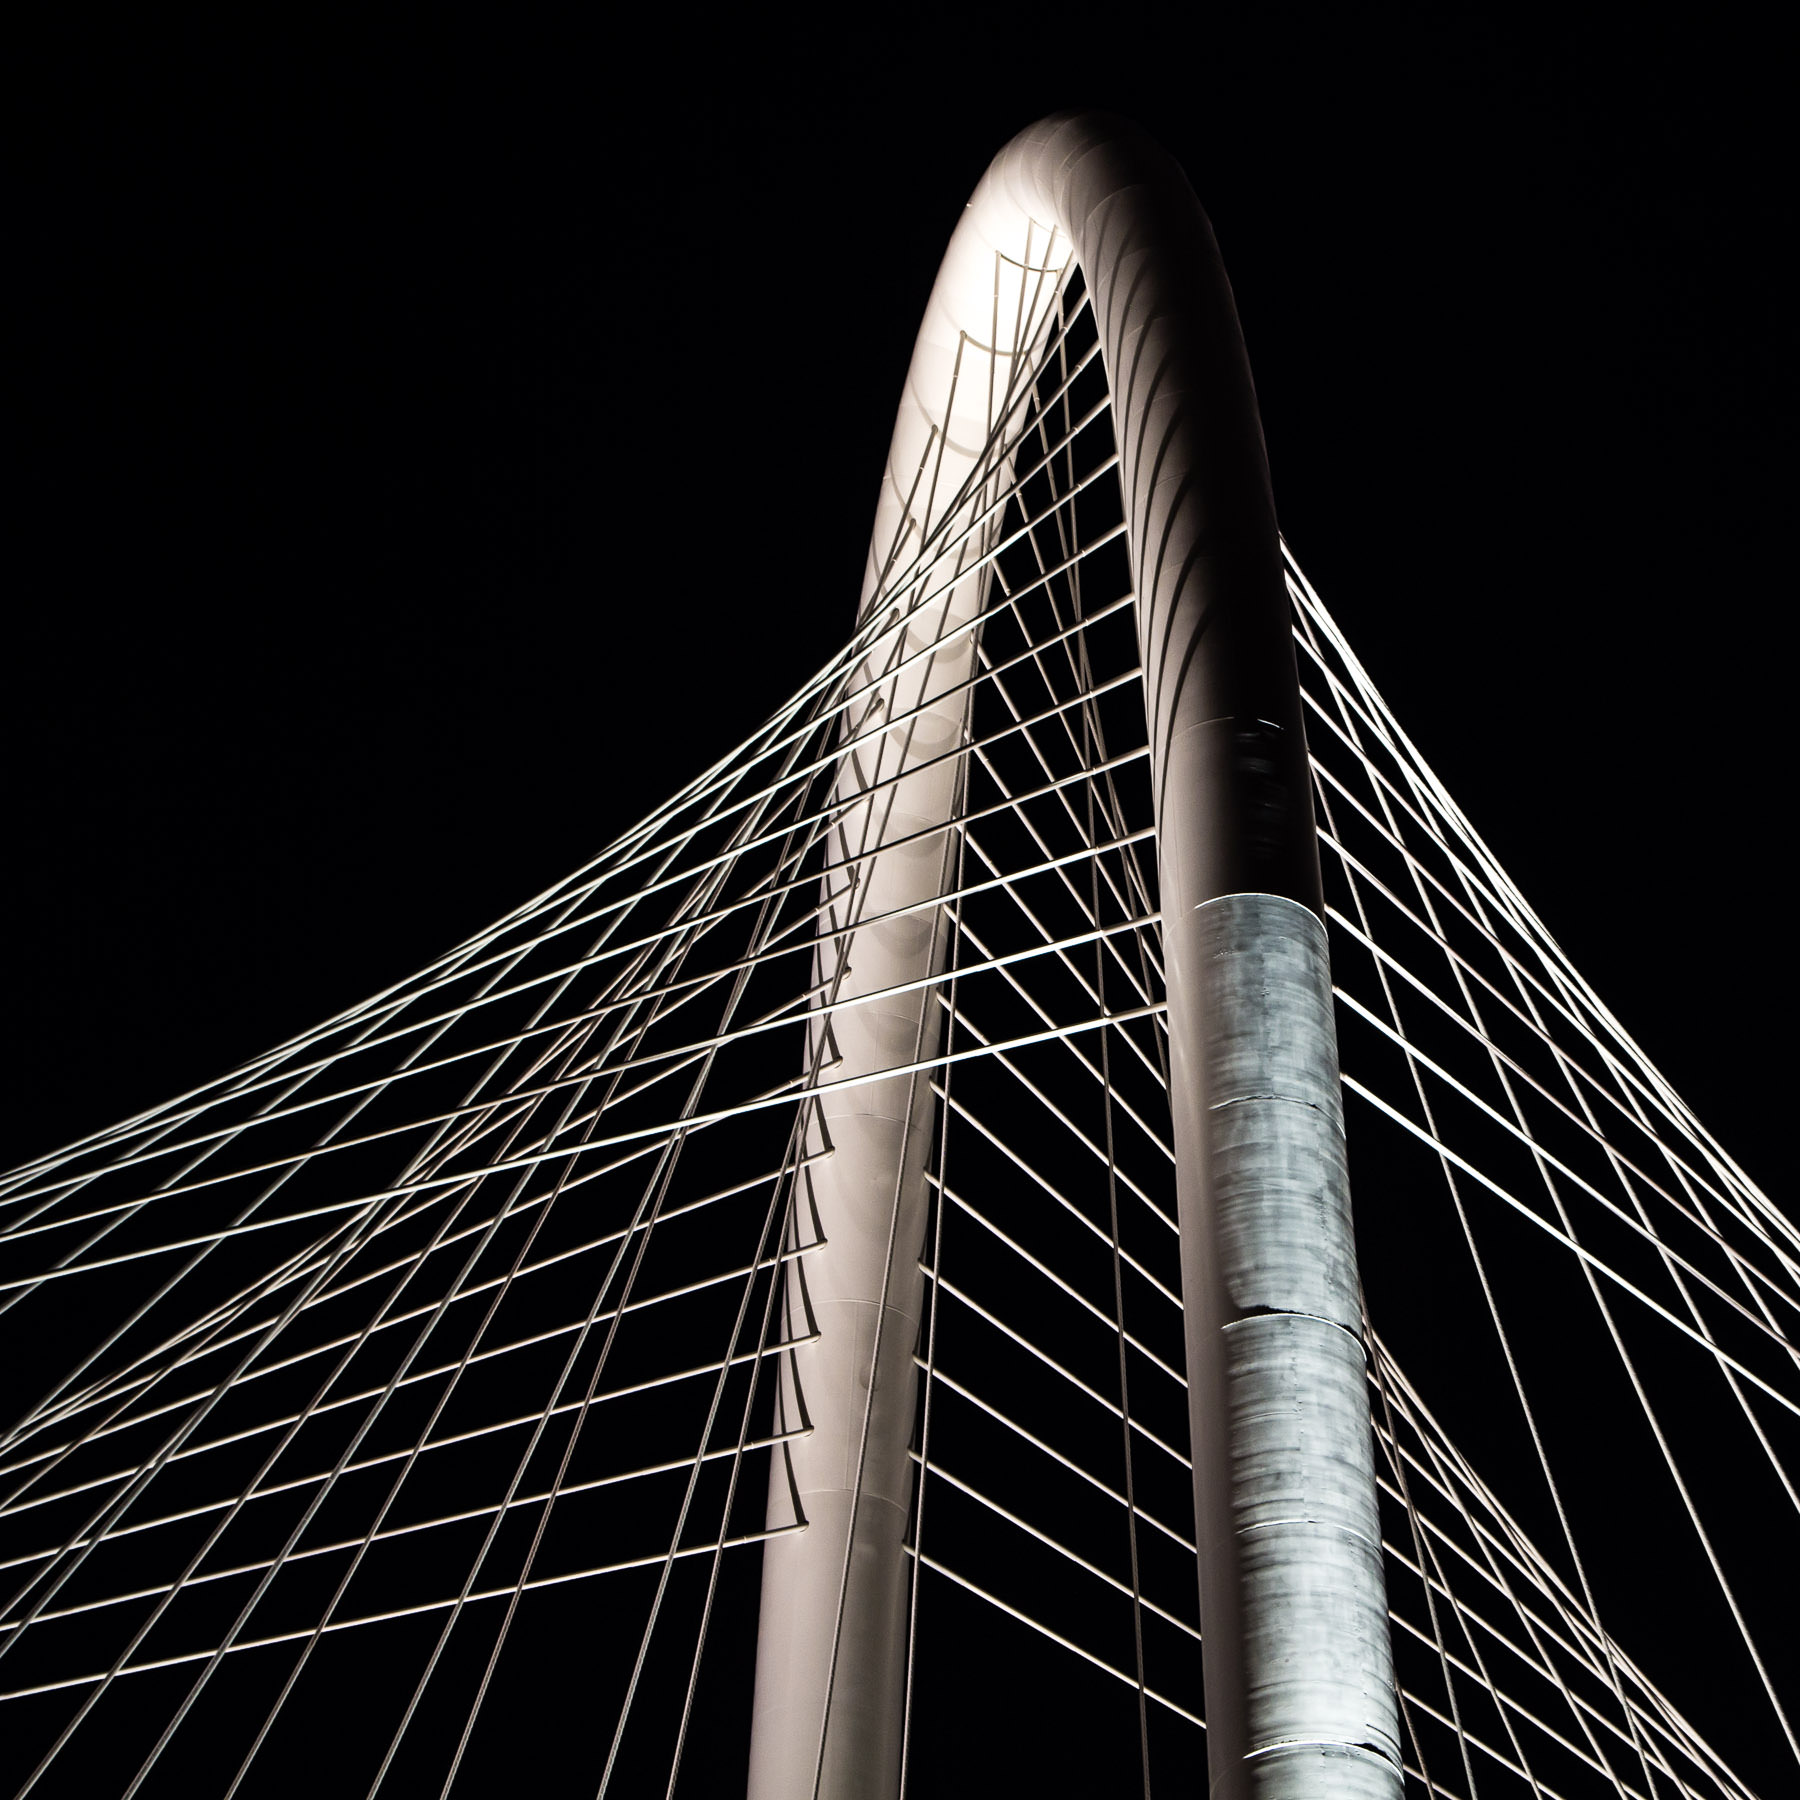 Nighttime detail of the arch and cables of the Santiago Calatrava-designed Margaret Hunt Hill Bridge, Dallas.